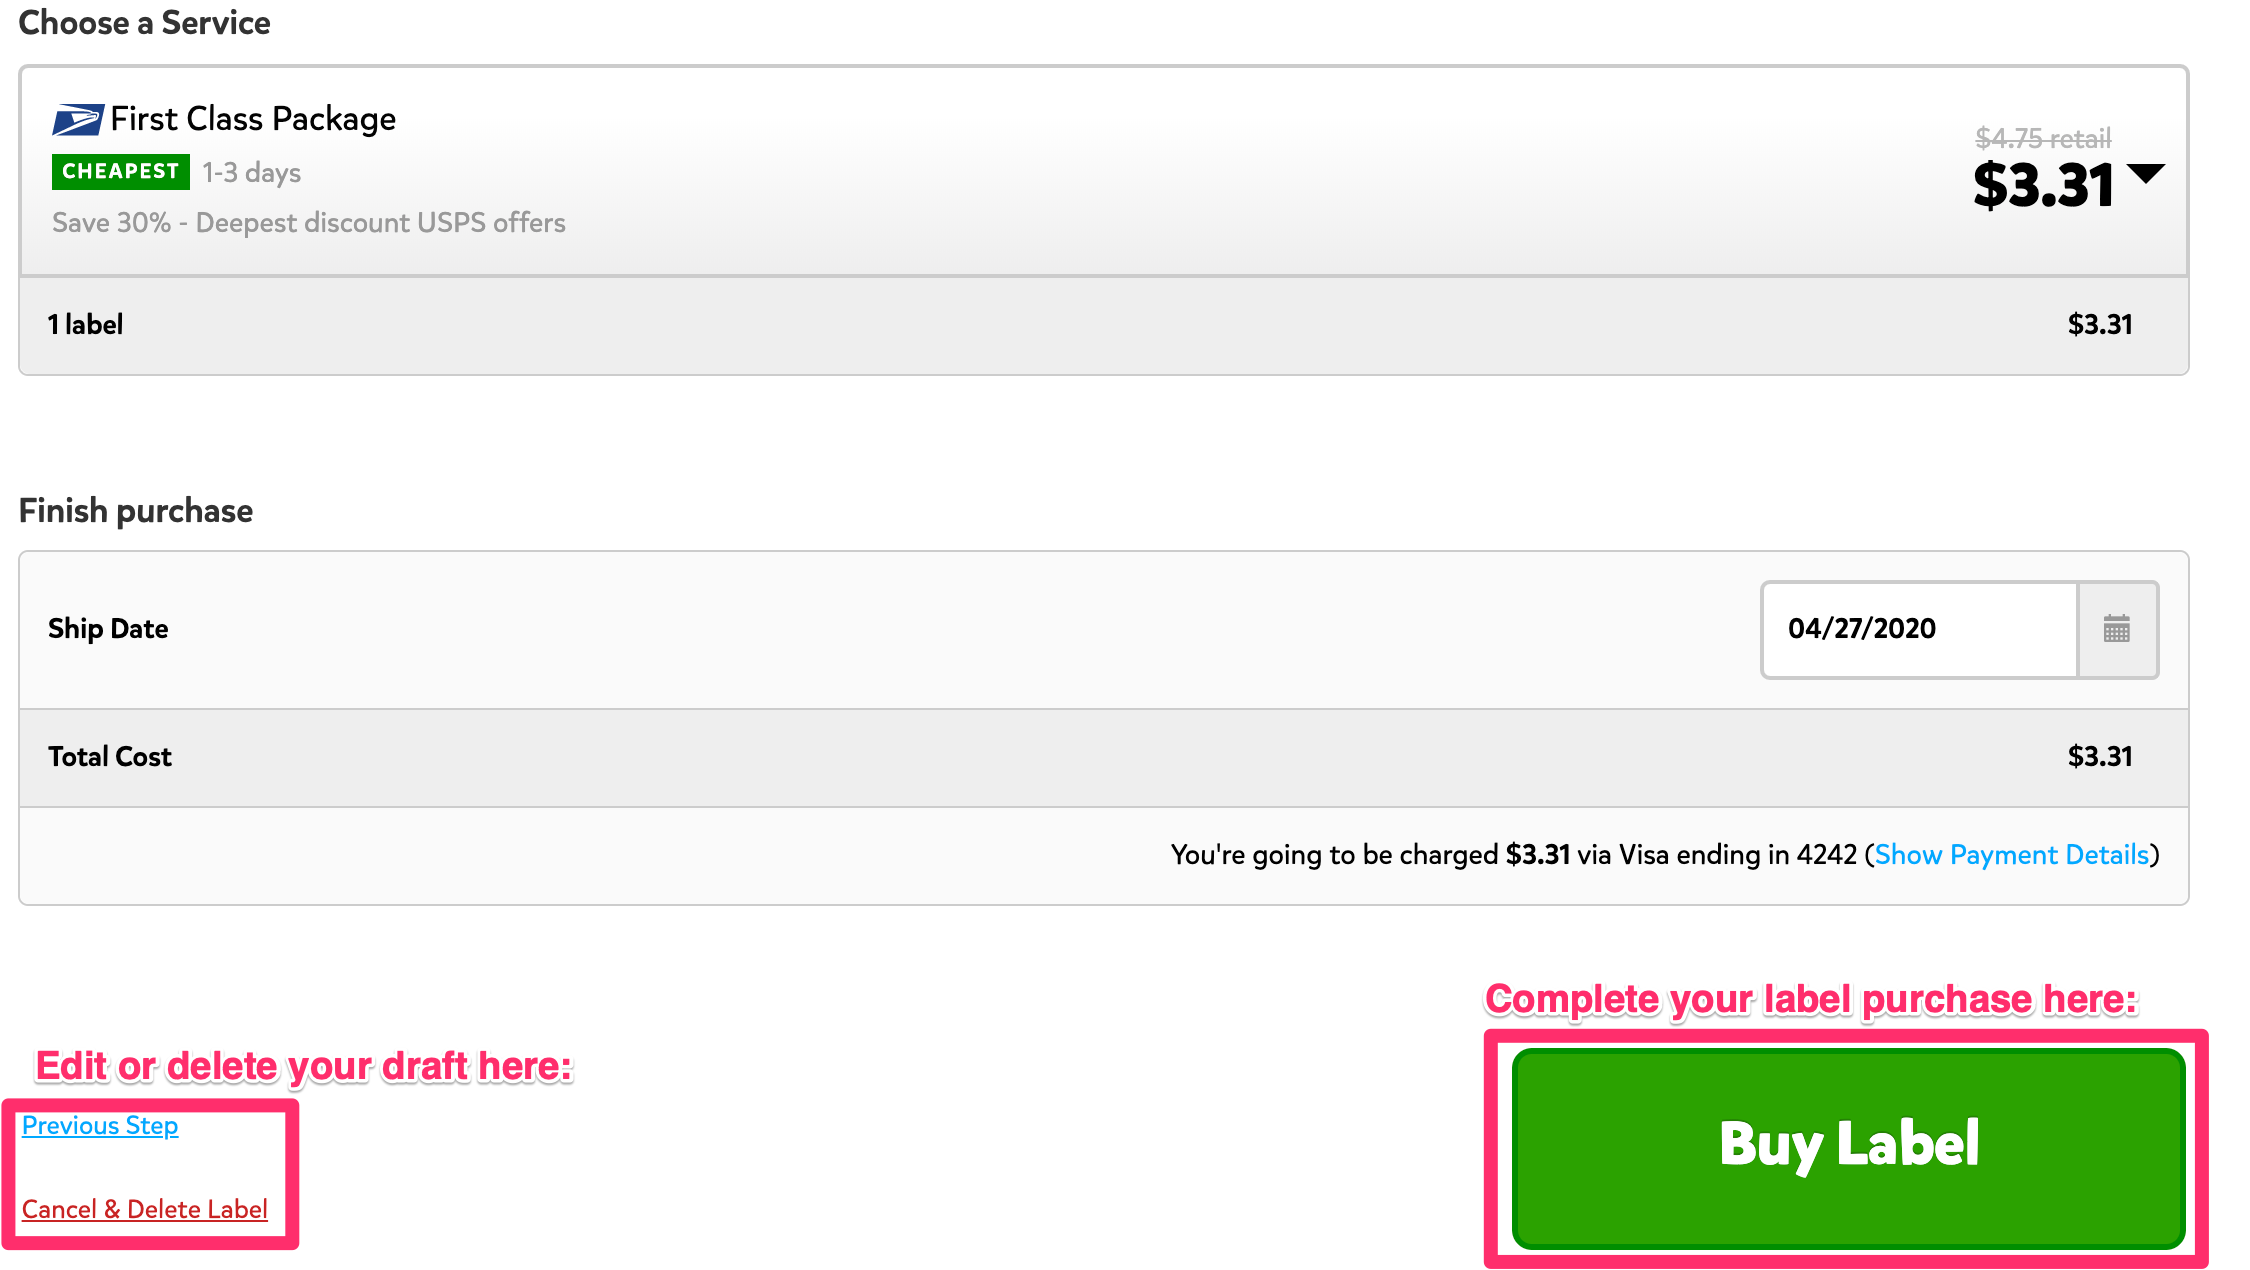 A screenshot showing the bottom of the page that appears when you click the blue 'Input Needed' button. Towards the left corner, there are options for 'Previous Step,' and 'Cancel and Delete Label.' Towards the bottom right corner, there's a green 'Buy Label' button that you can click to complete the purchase of this particular shipment.